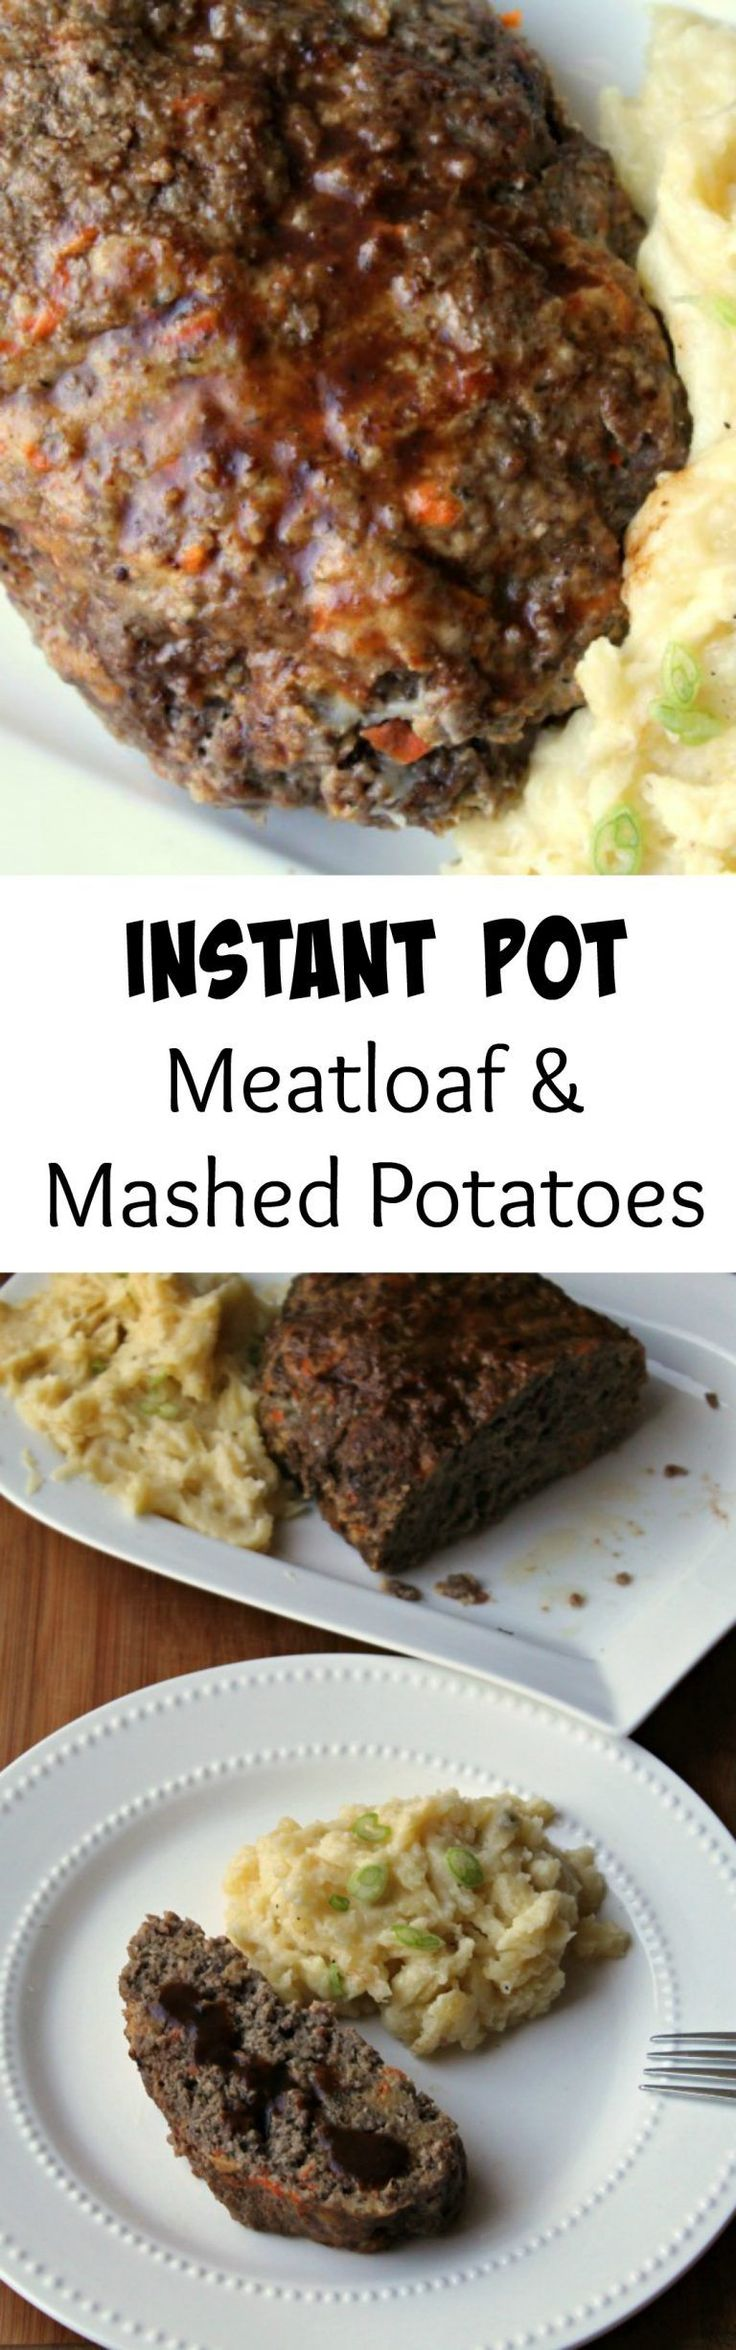 Instant Pot Meatloaf & Mashed Potatoes  * A ONE POT MEAL * Everything cooks together at the same time!  A total time saver! foodyschmoodyblog.com